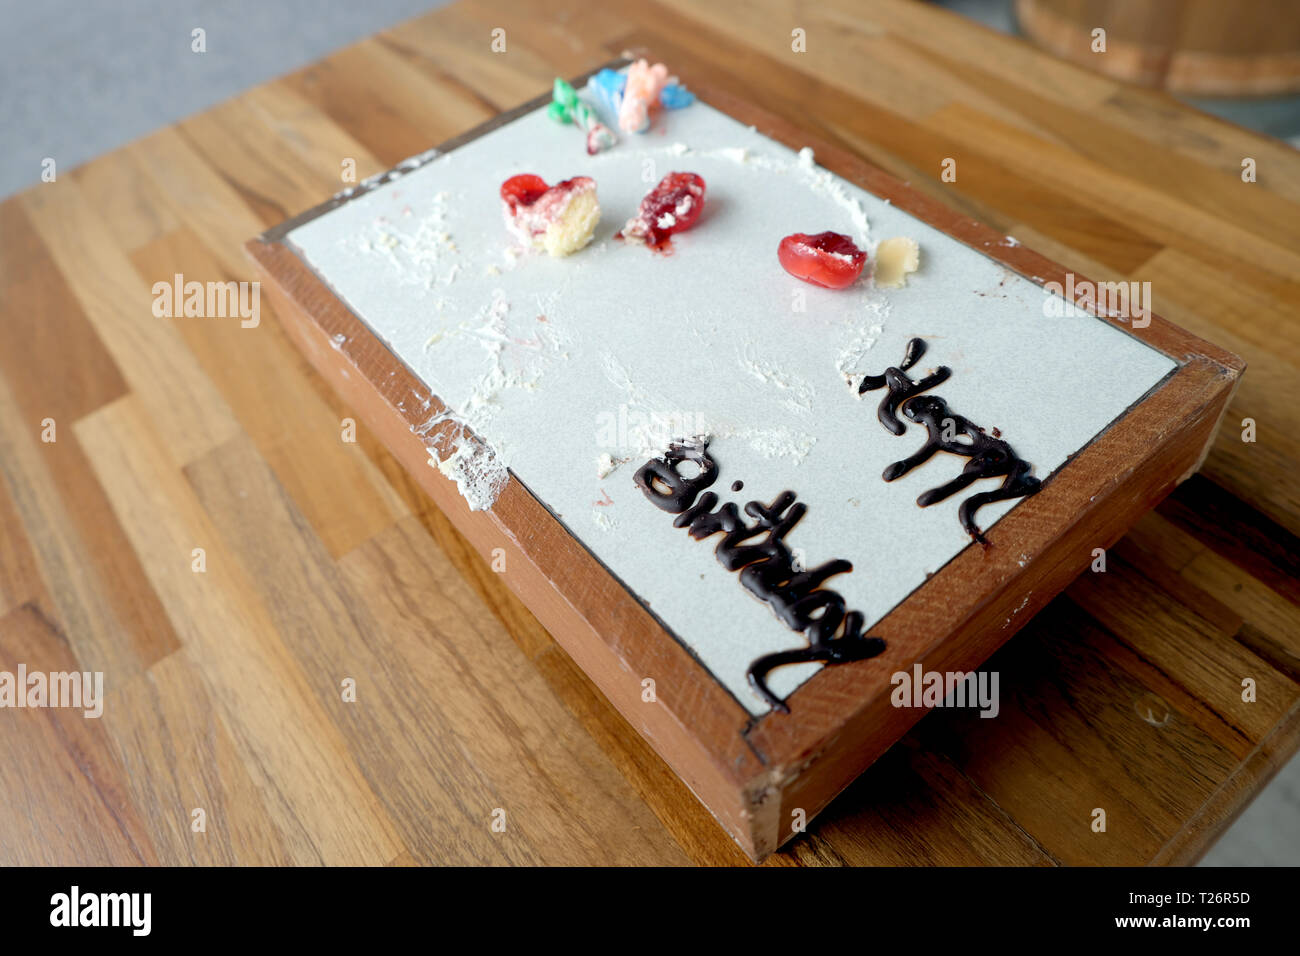 Stupendous Happy Birthday Cake Dirty And Empty Stock Photo 242324361 Alamy Personalised Birthday Cards Petedlily Jamesorg